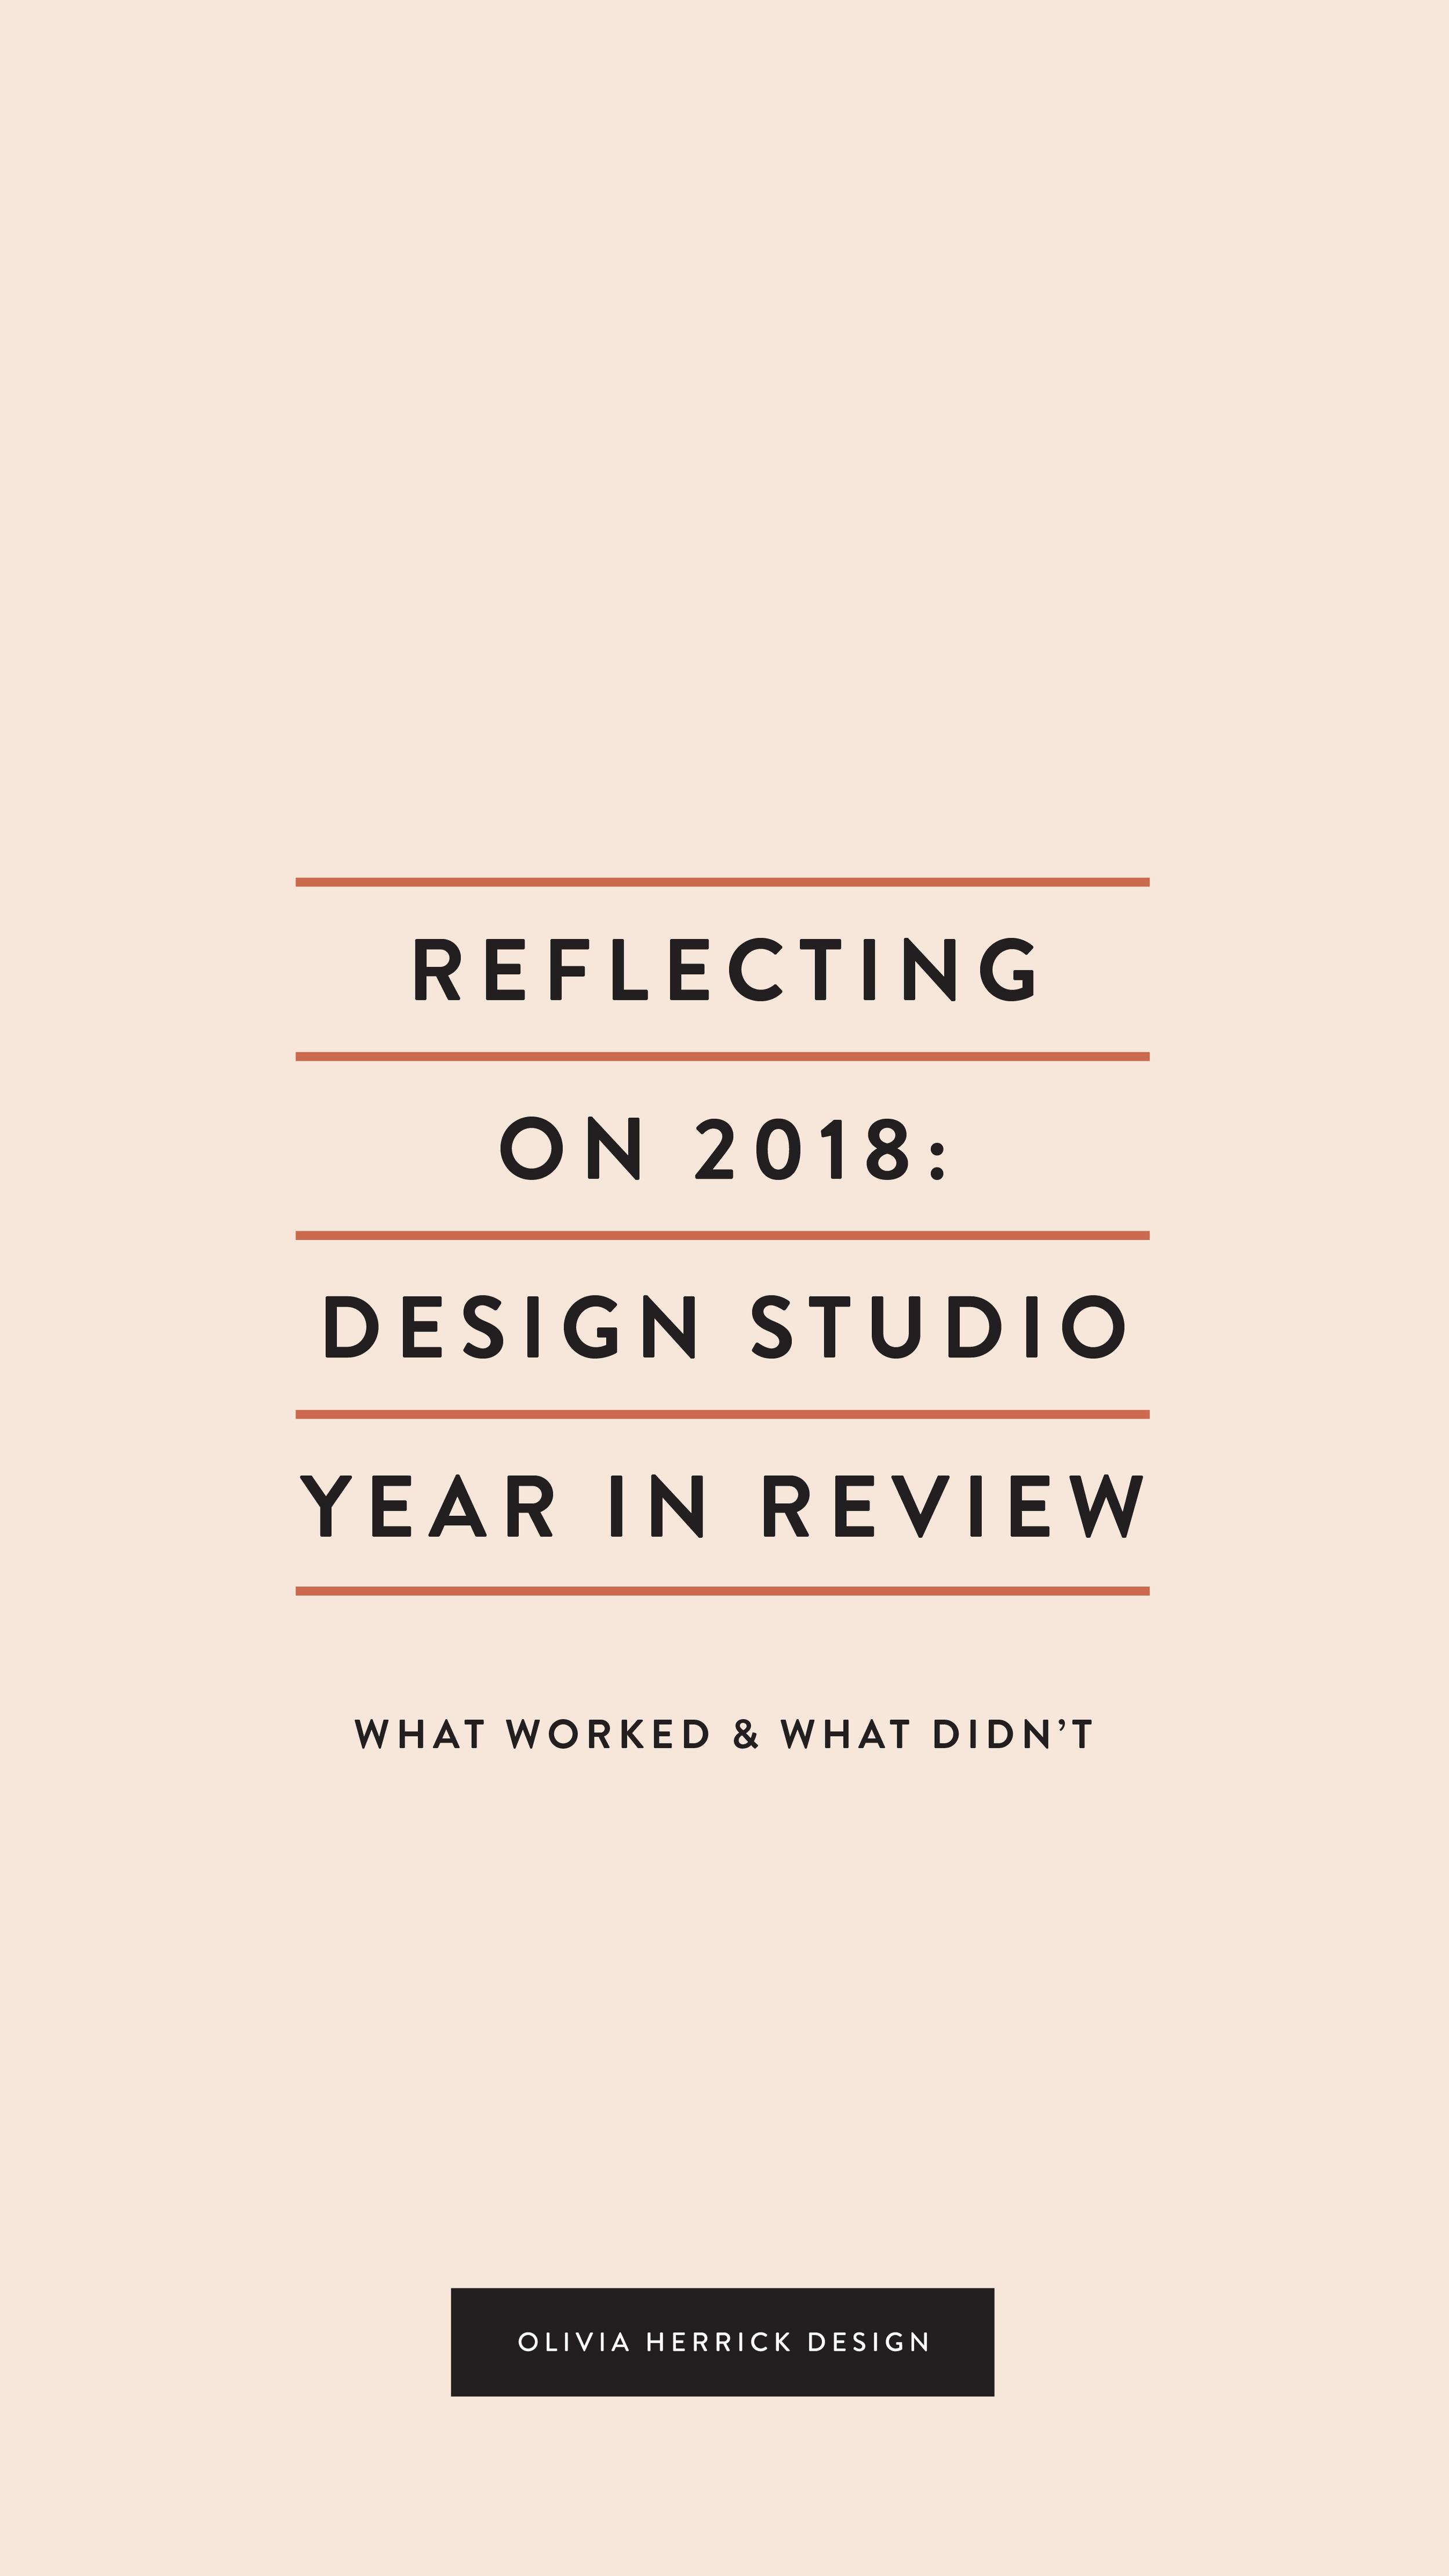 olivia-herrick-design-year-in-review-01.png